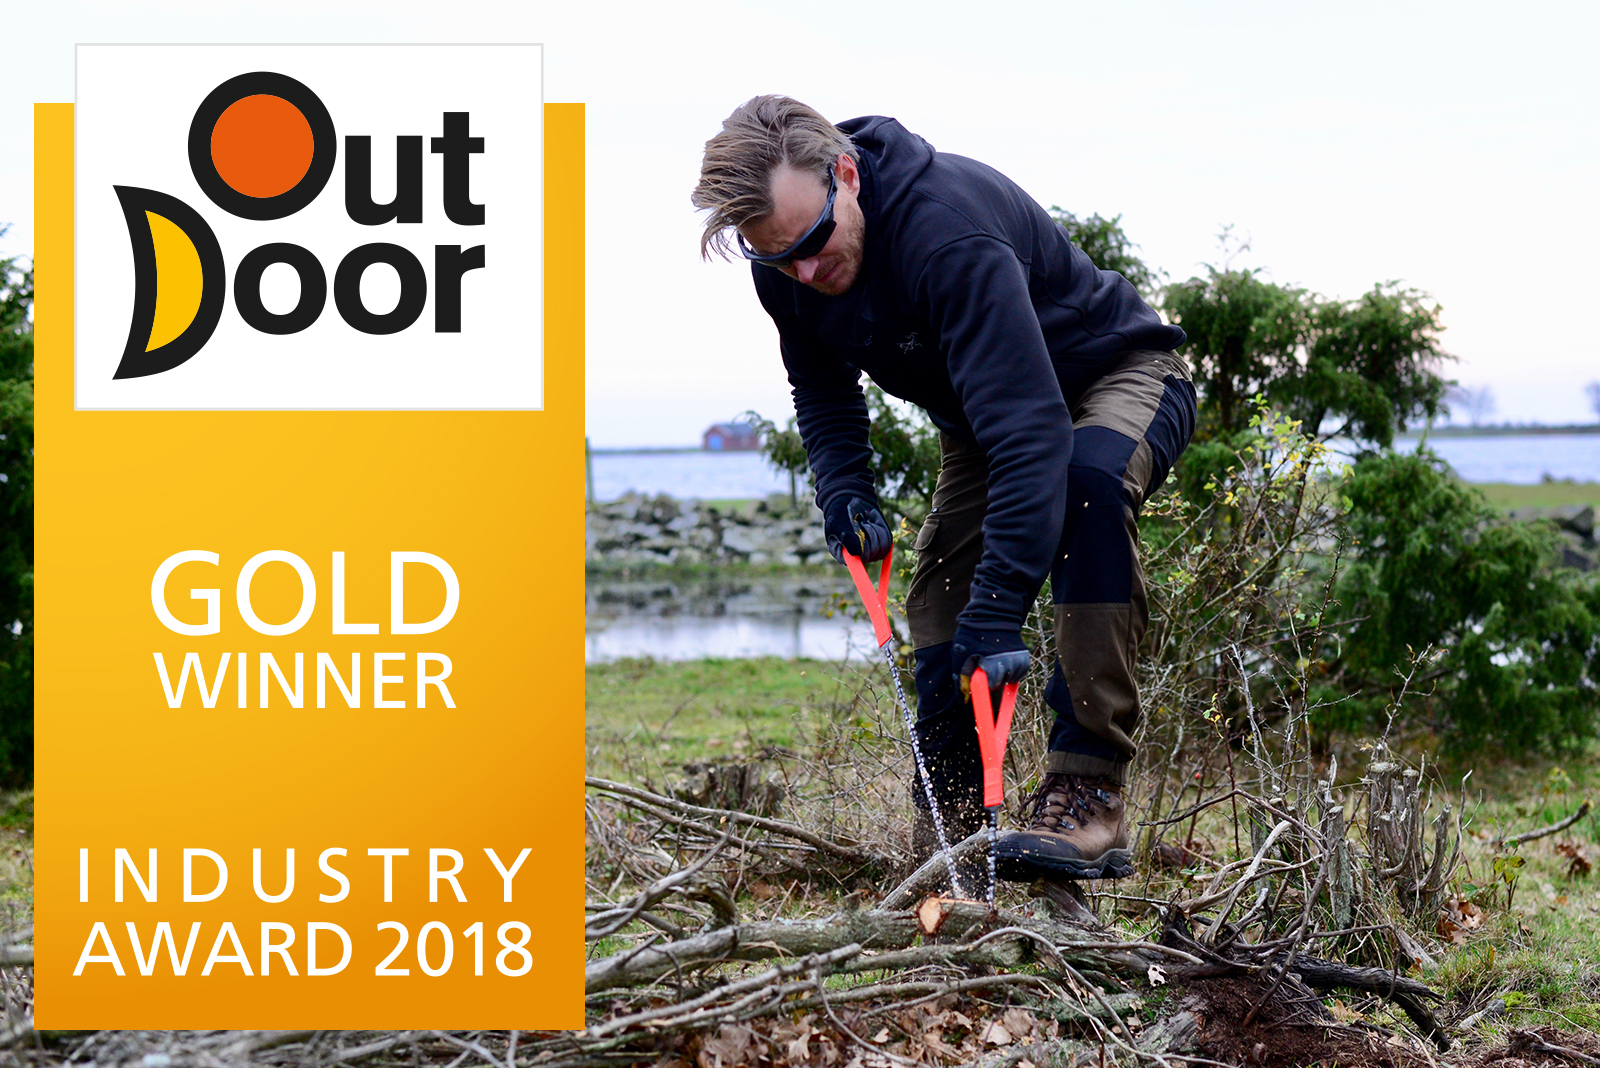 Nordic Pocket Saw is Winning the OutDoor INDUSTRY AWARD